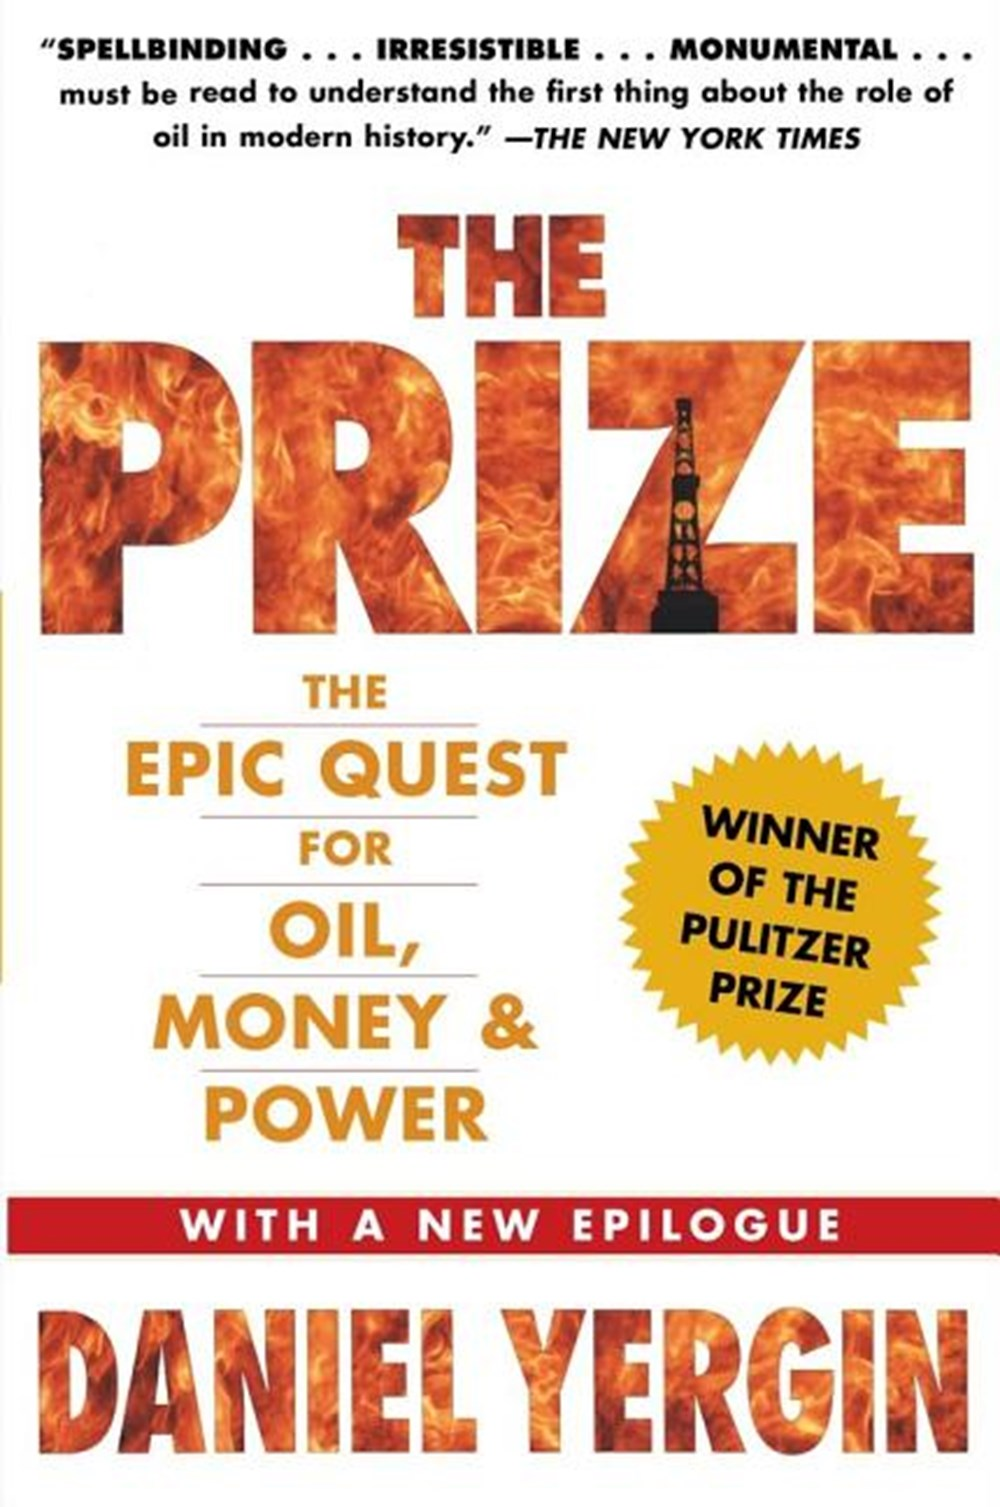 Prize The Epic Quest for Oil, Money & Power